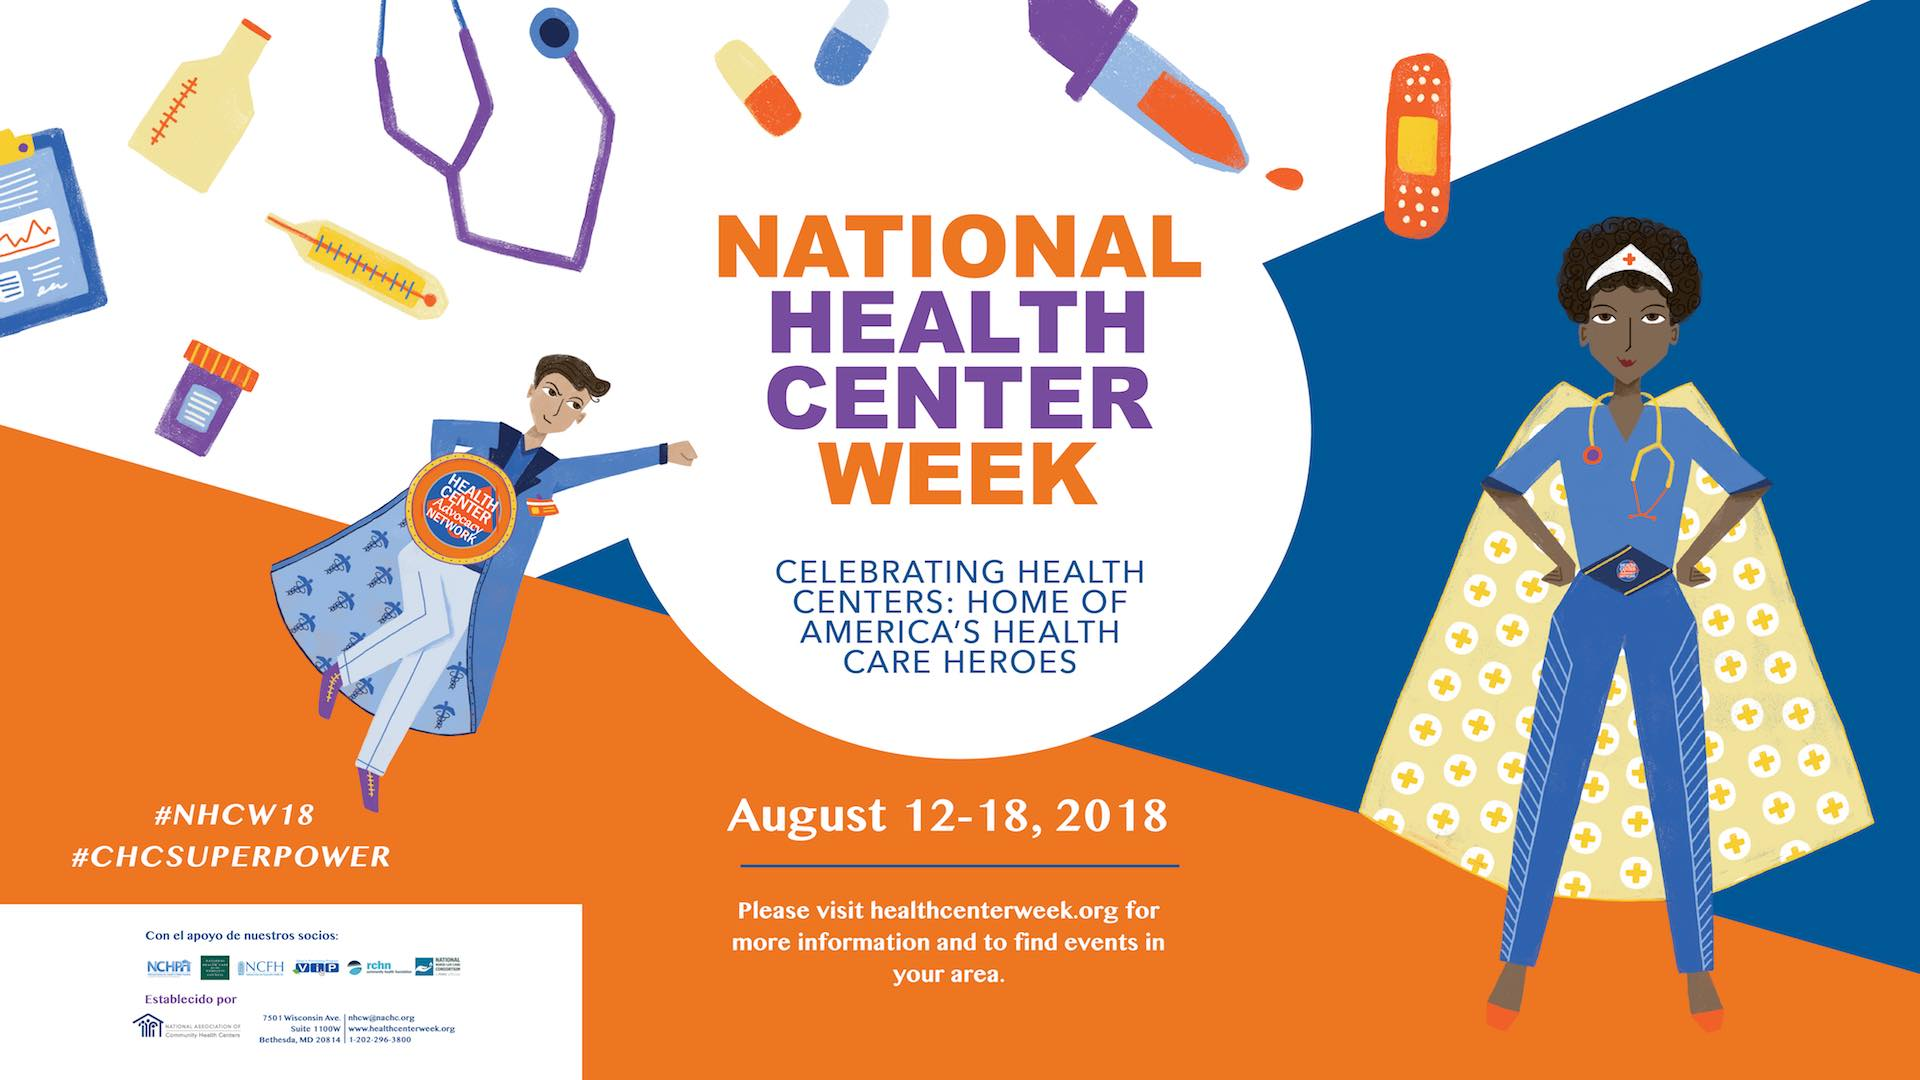 National Health Center Week Superhero banner